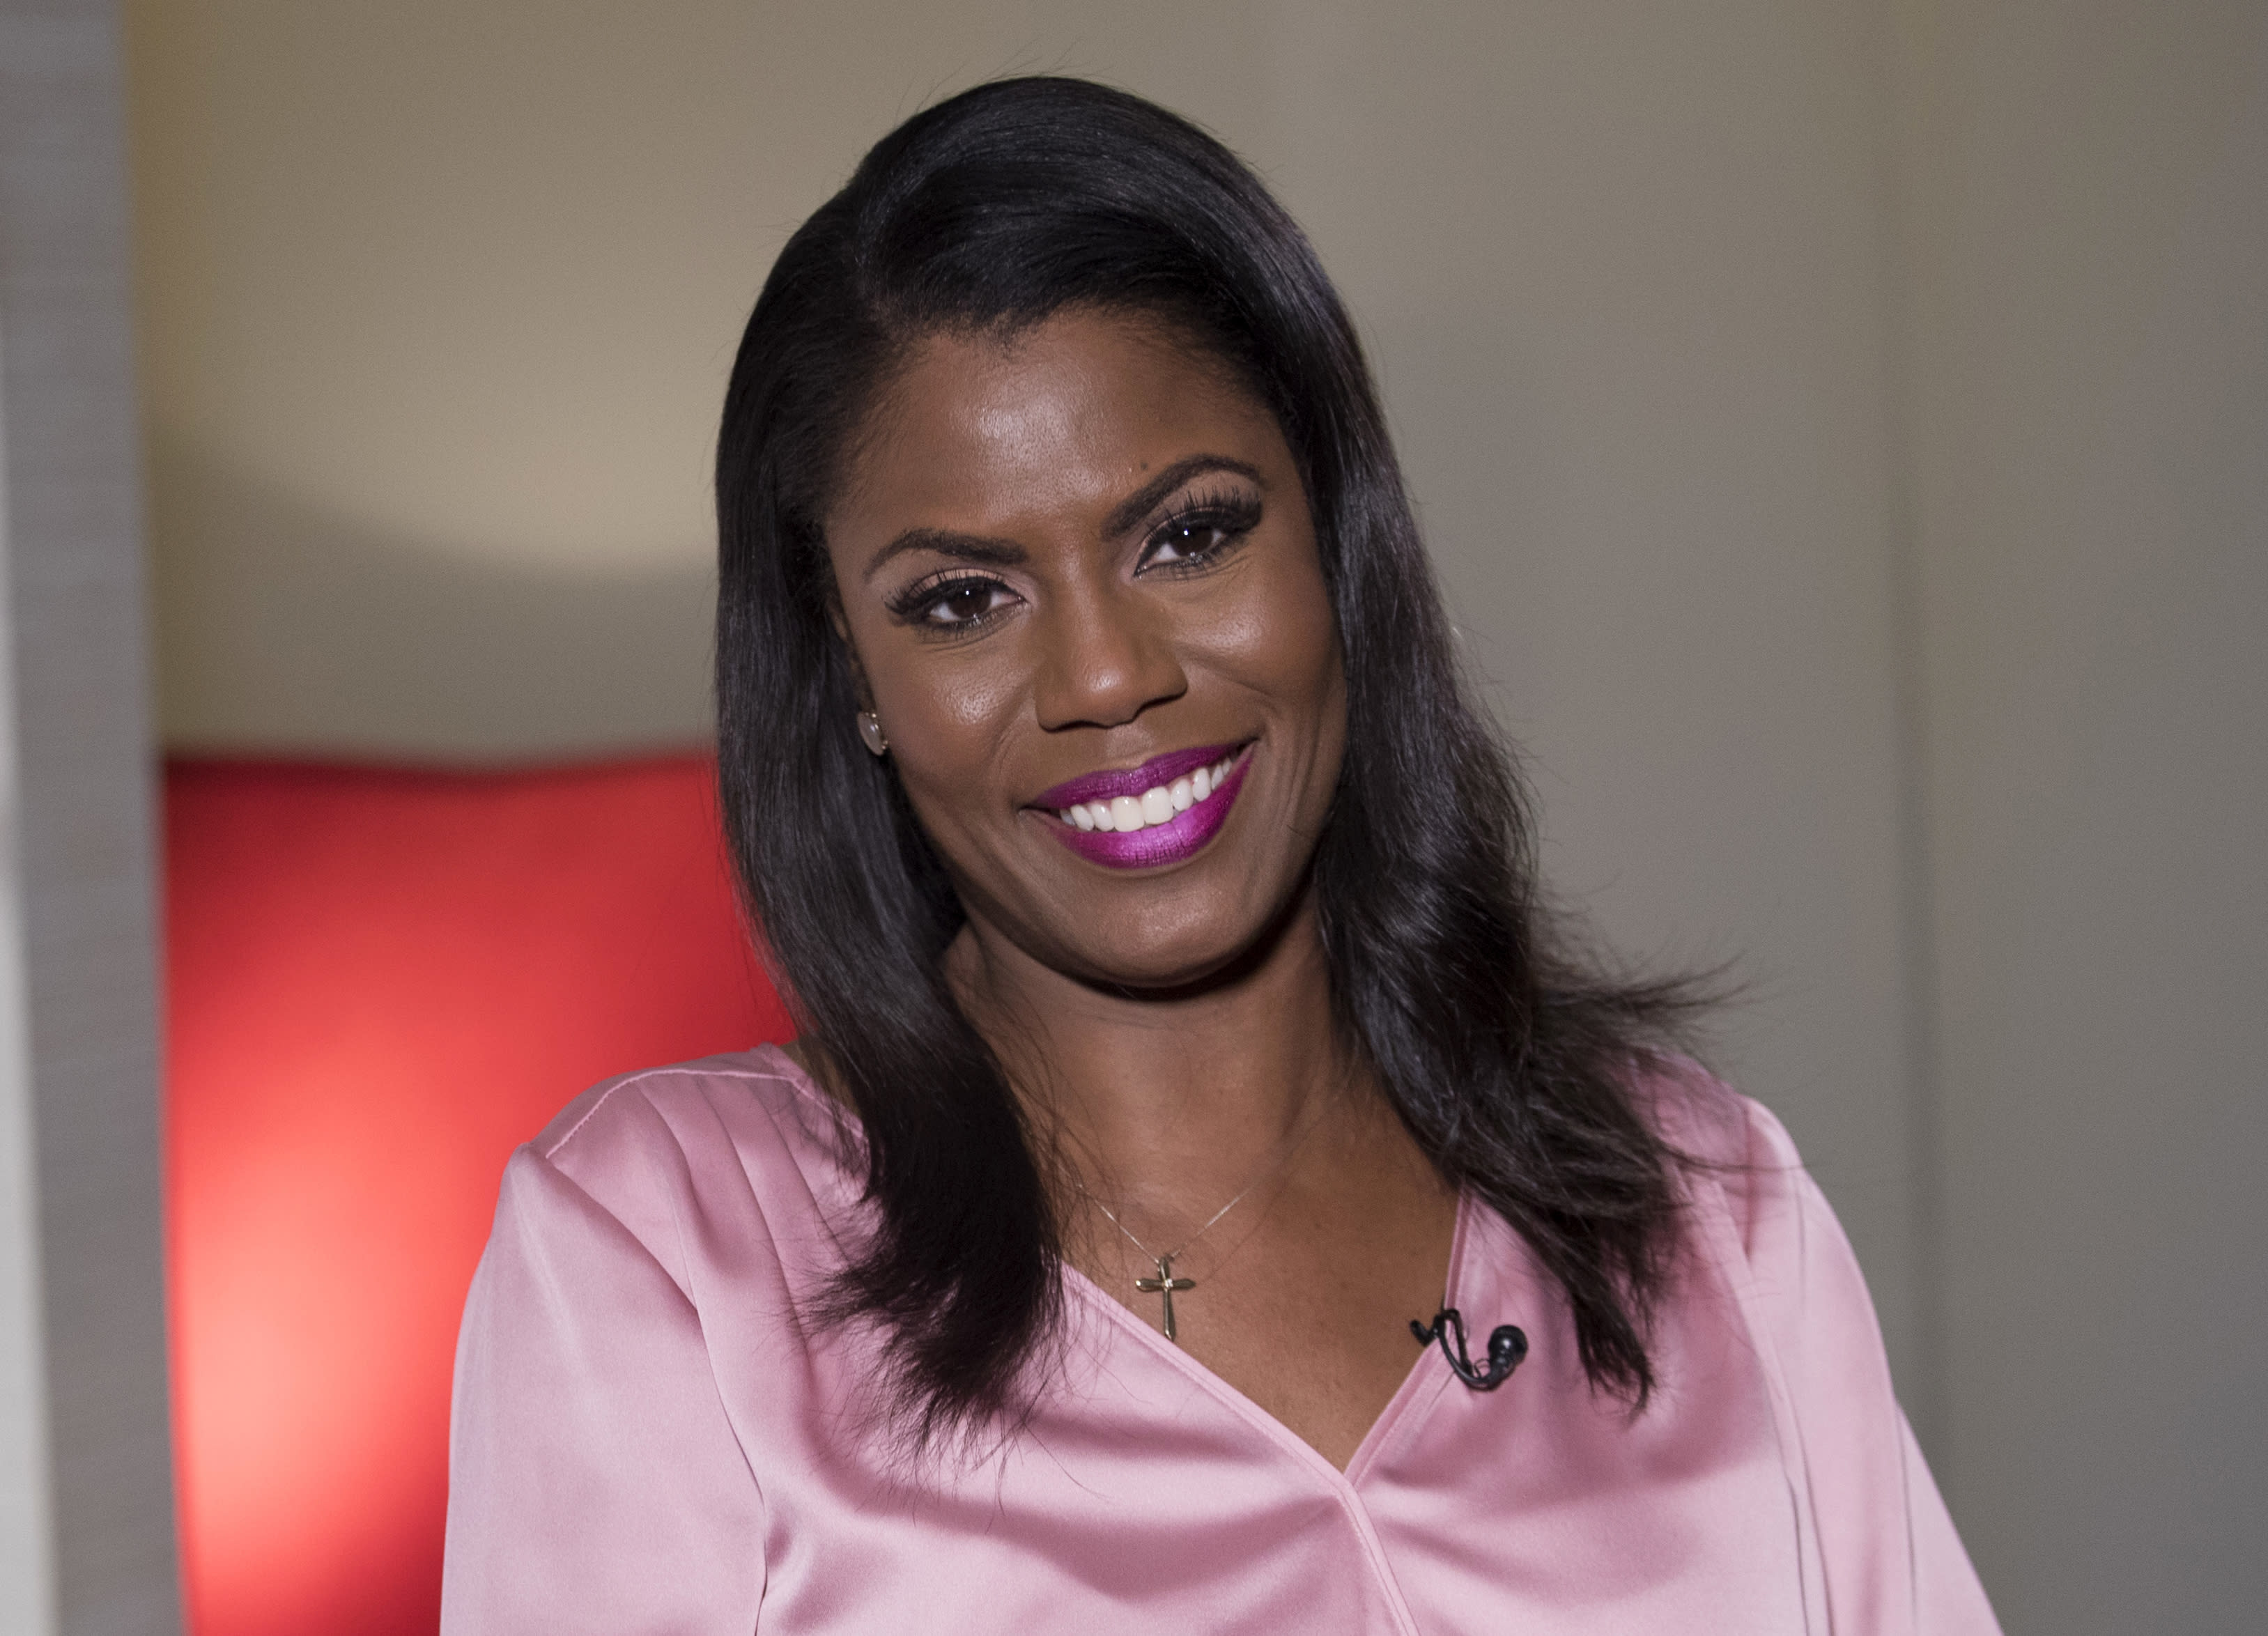 """FILE - In this Aug. 14, 2018, file photo former White House staffer Omarosa Manigault Newman smiles during an interview in New York. When President Donald Trump called porn actress Stormy Daniels """"horseface"""" on Twitter, he added to his long list of creative, some say misogynistic, descriptions for women. A look at how Trump's words, and his attitude, might play out three weeks before an election that features a record number of women candidates. (AP Photo/Mary Altaffer, File)"""